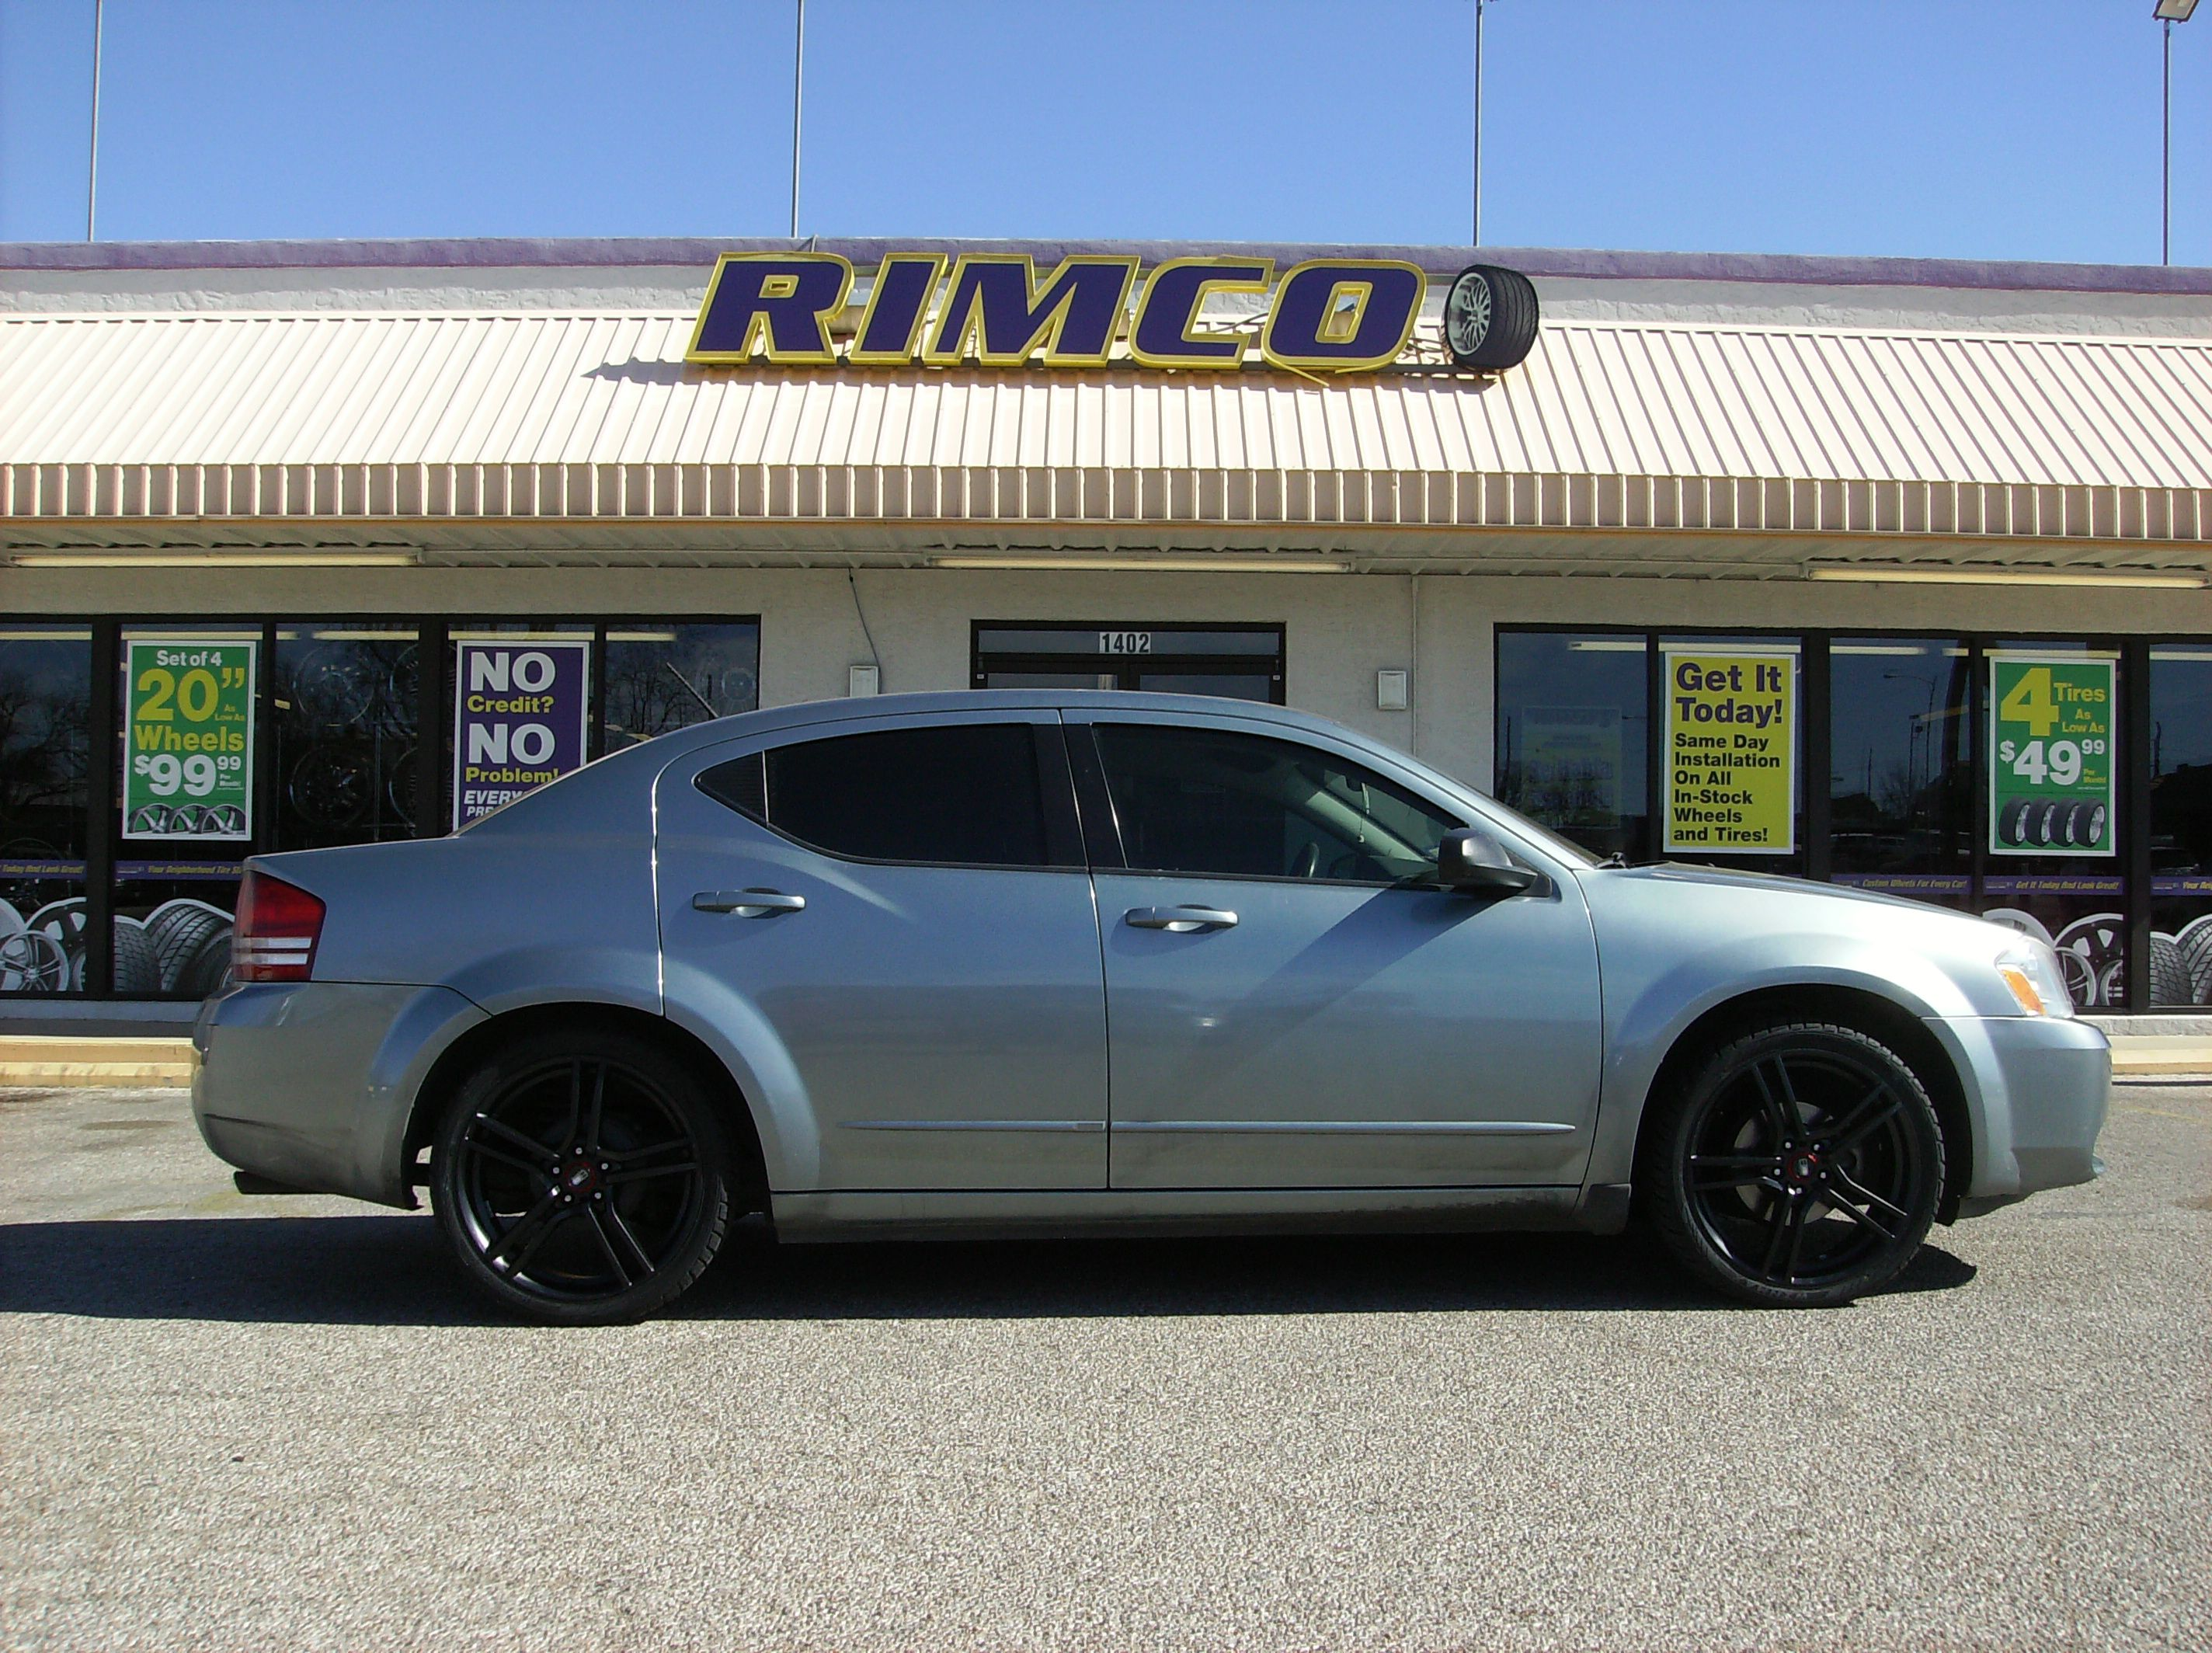 Check out jessica slack s 2008 dodge avenger sporting vento black and machined 20x7 5 and